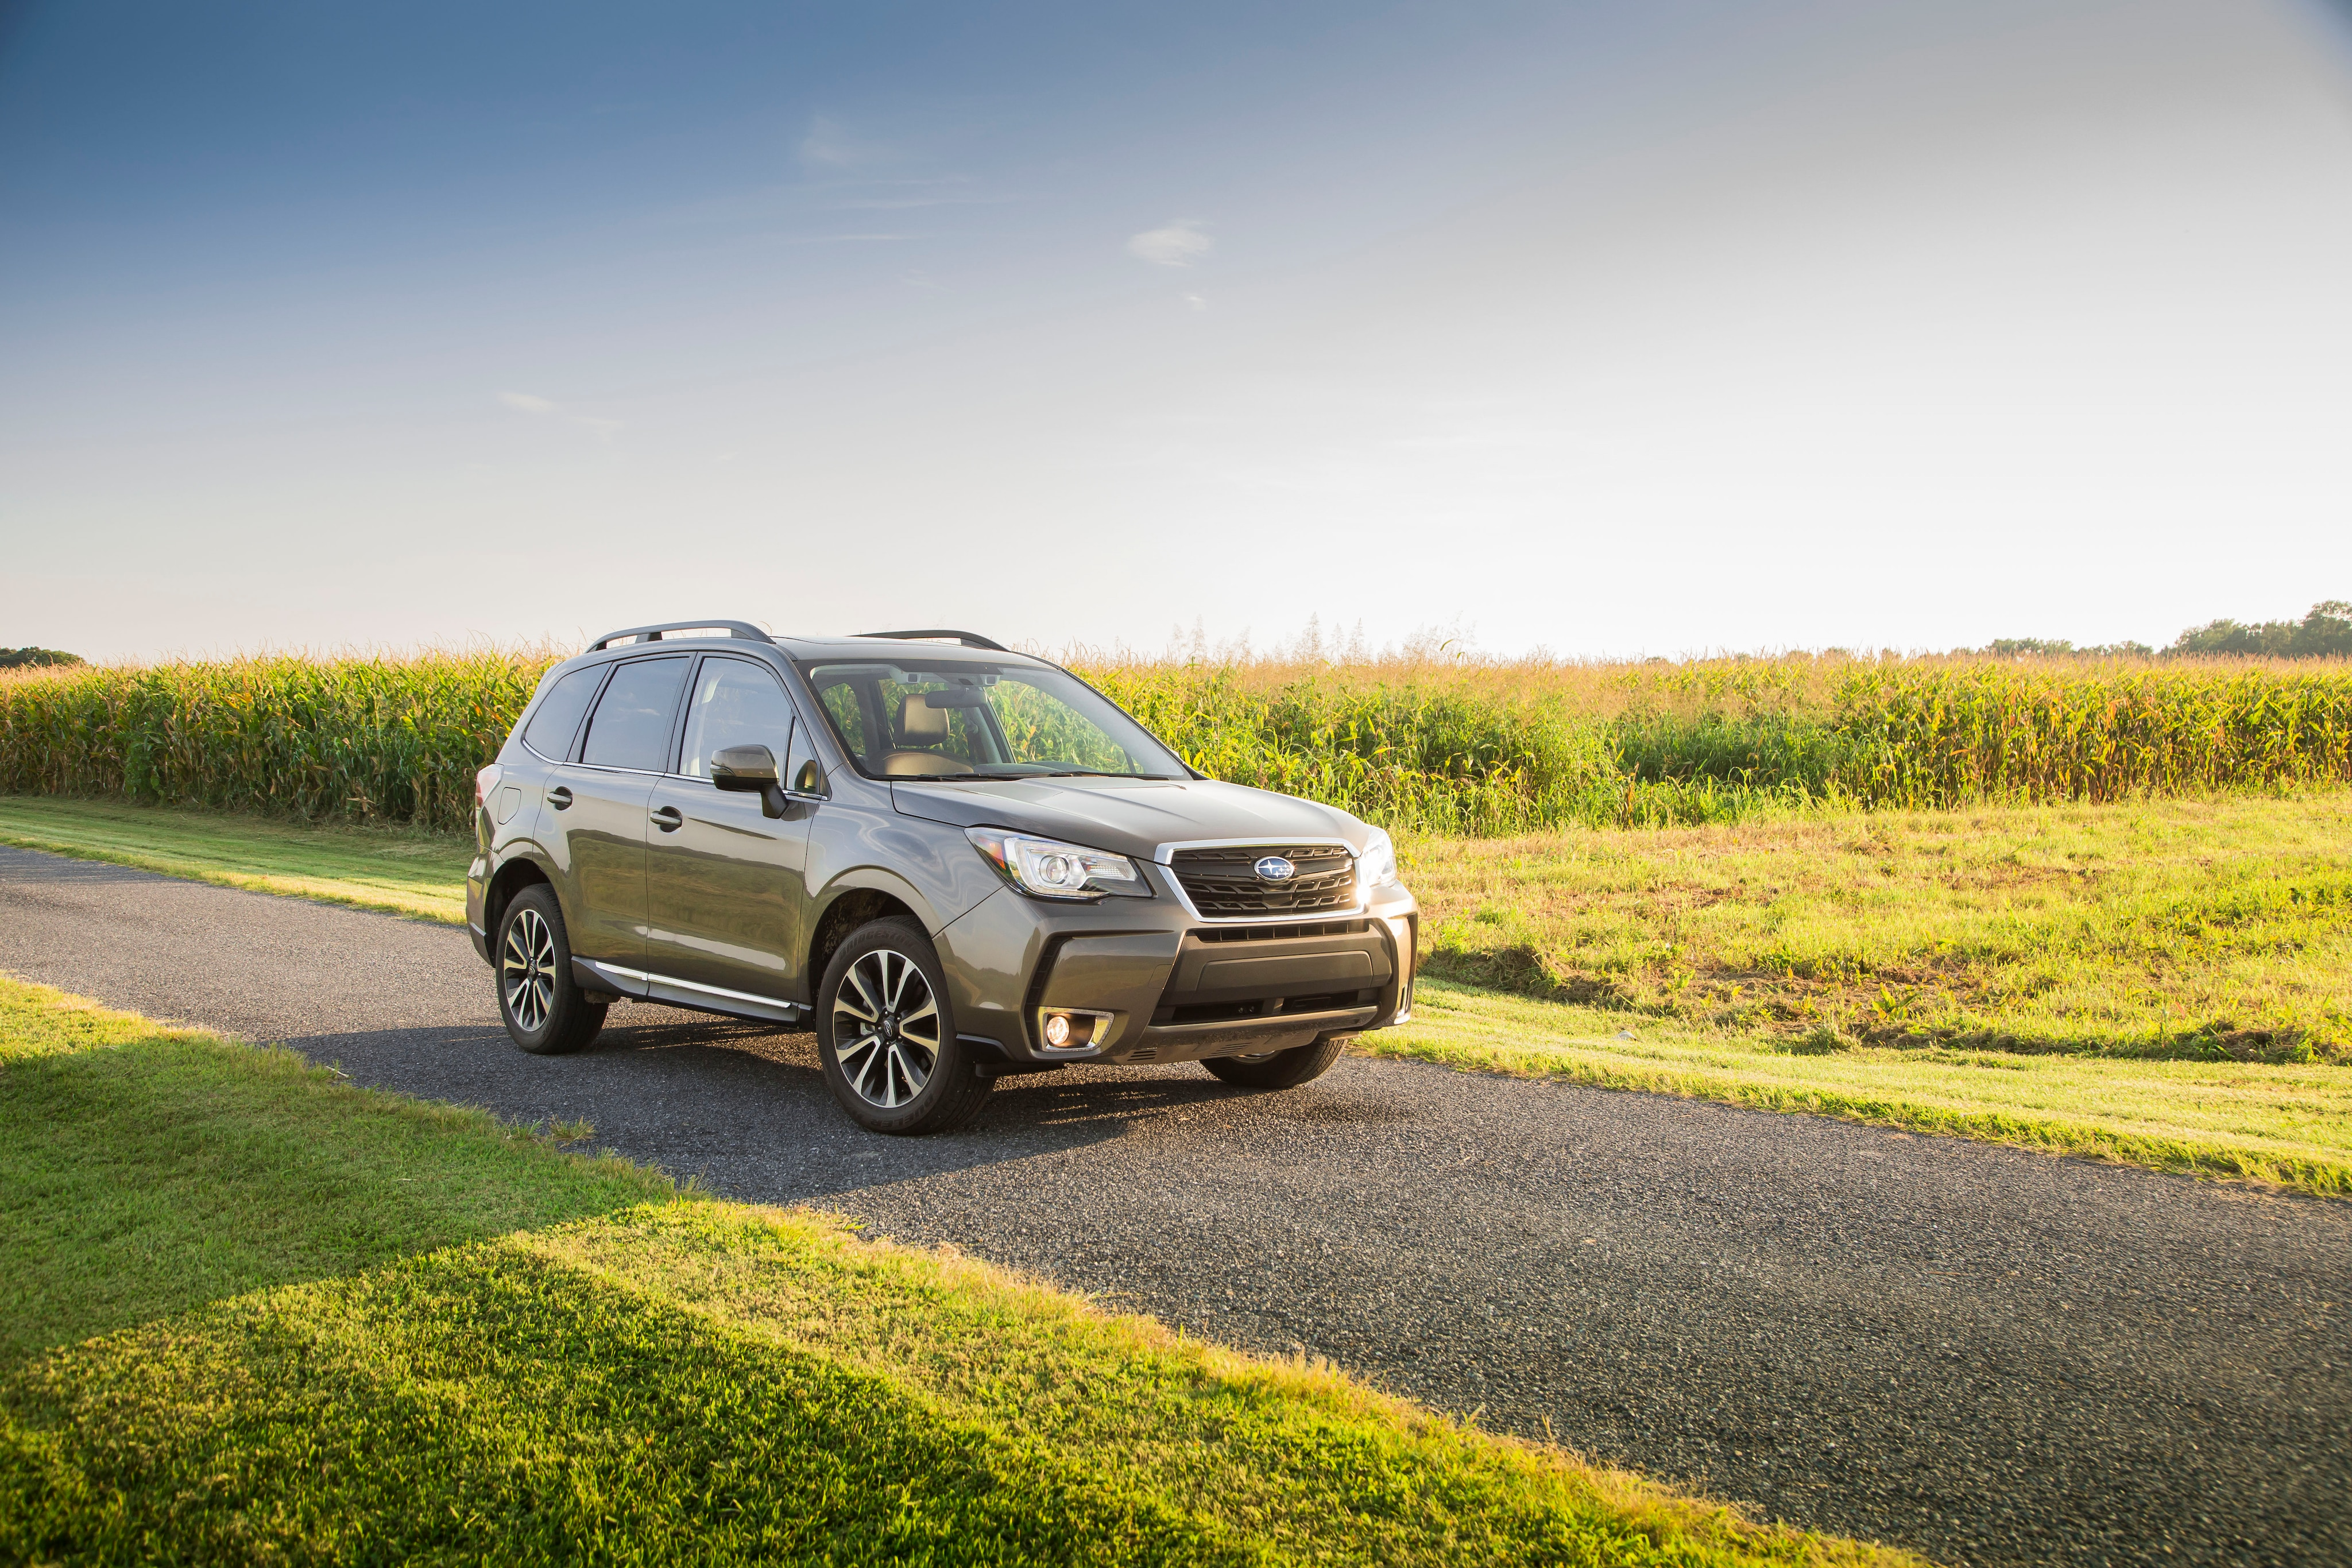 2017 Subaru Forester upgrades available near Orlando